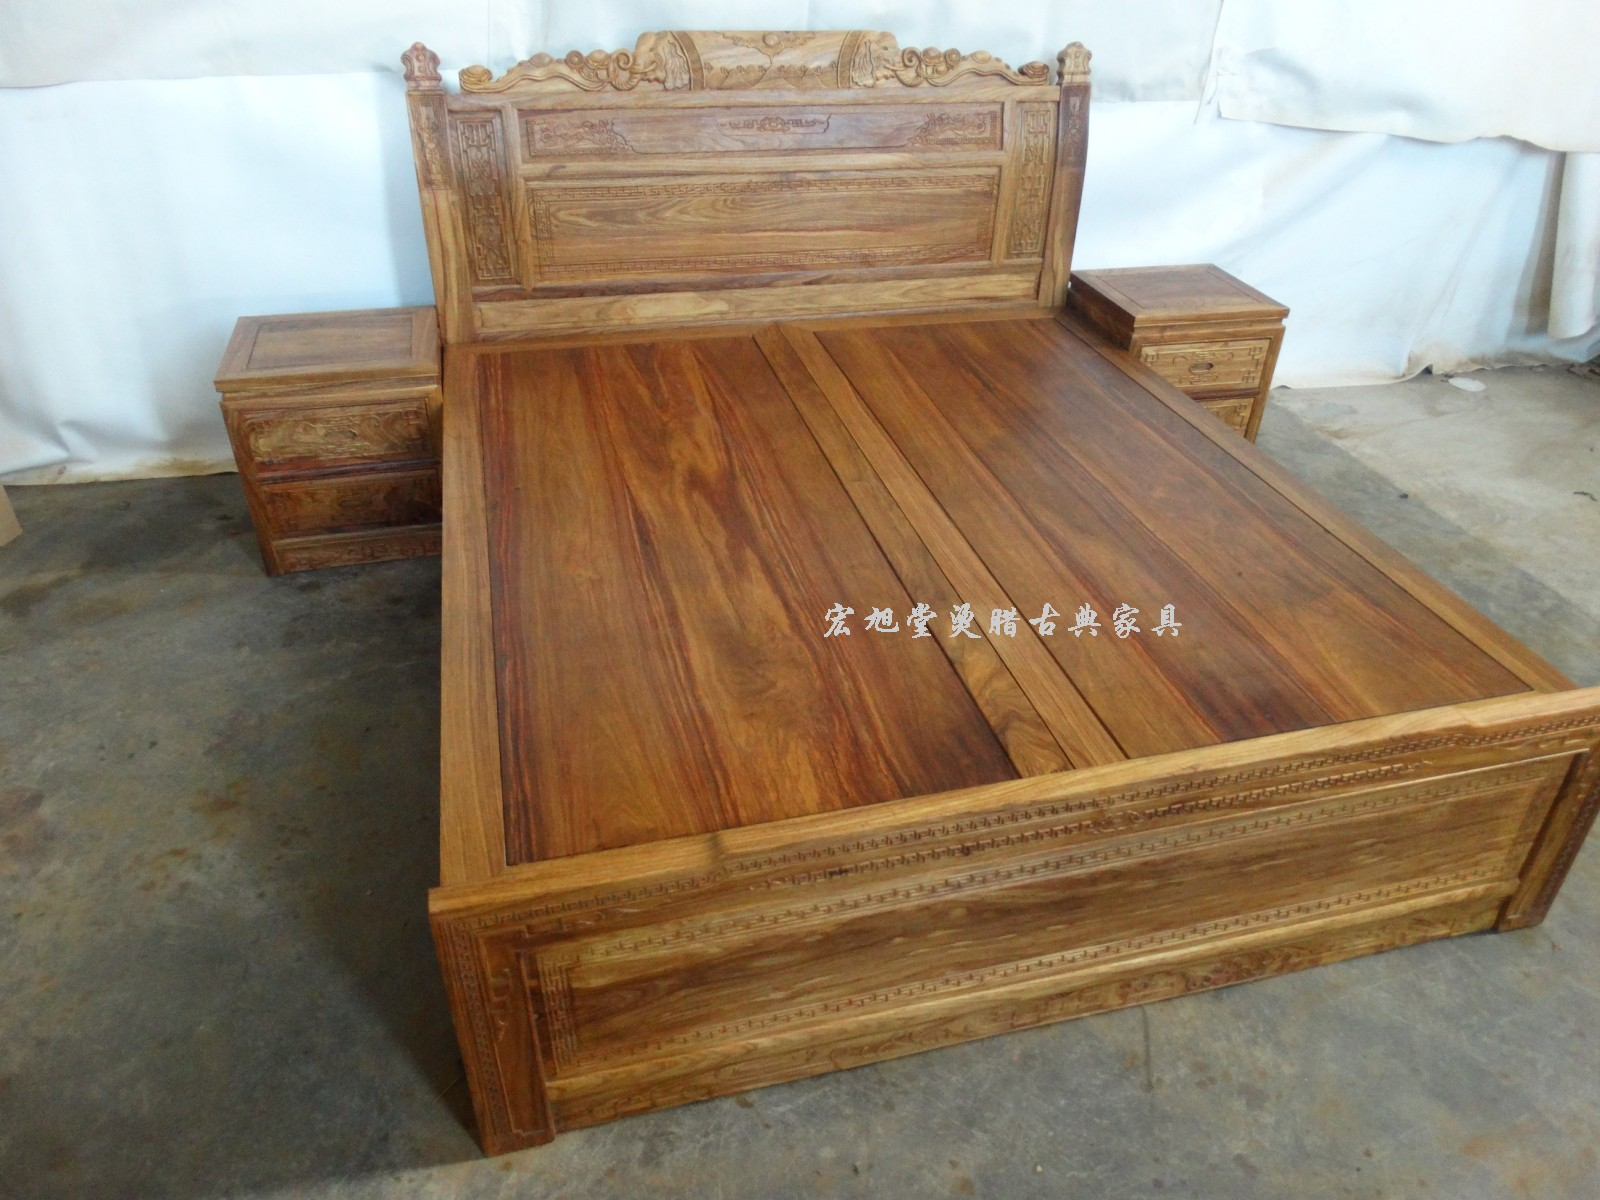 Special offer tangla rosewood mahogany furniture mahogany bed double bed 1.8 Chinese classical wood furniture